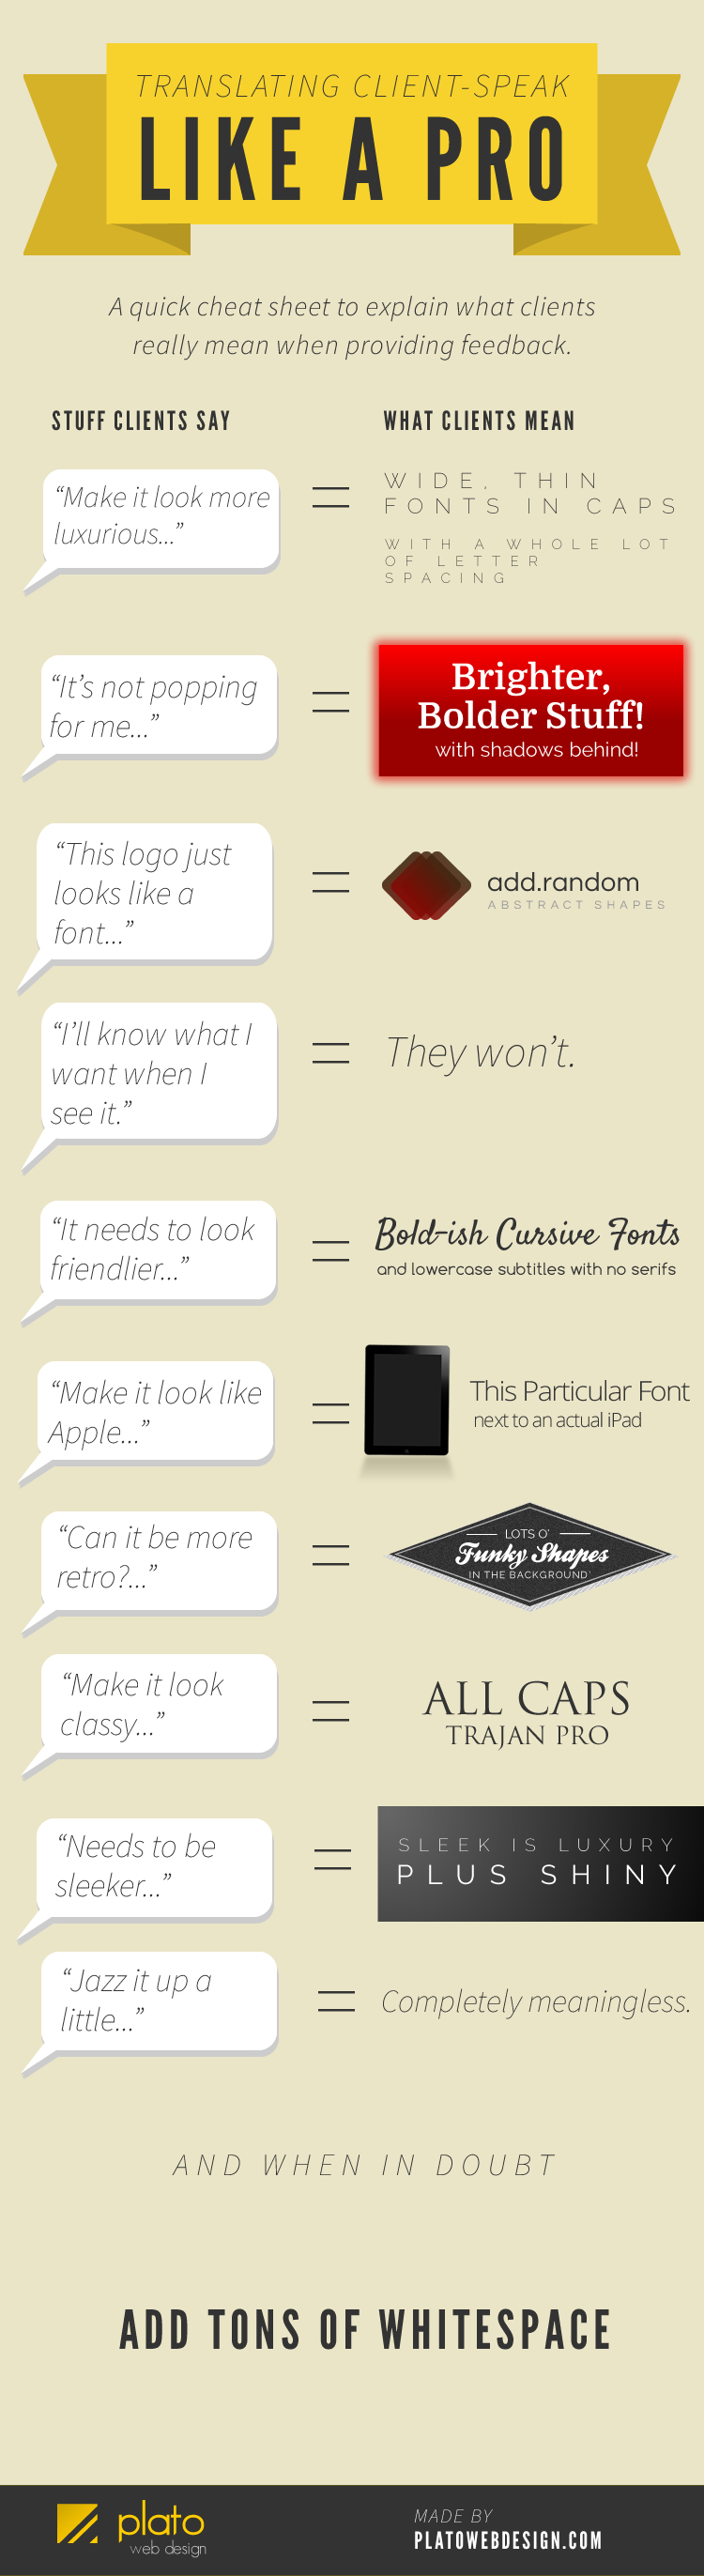 Client Speak Translated (Infographic) - An Infographic from Plato Webdesign